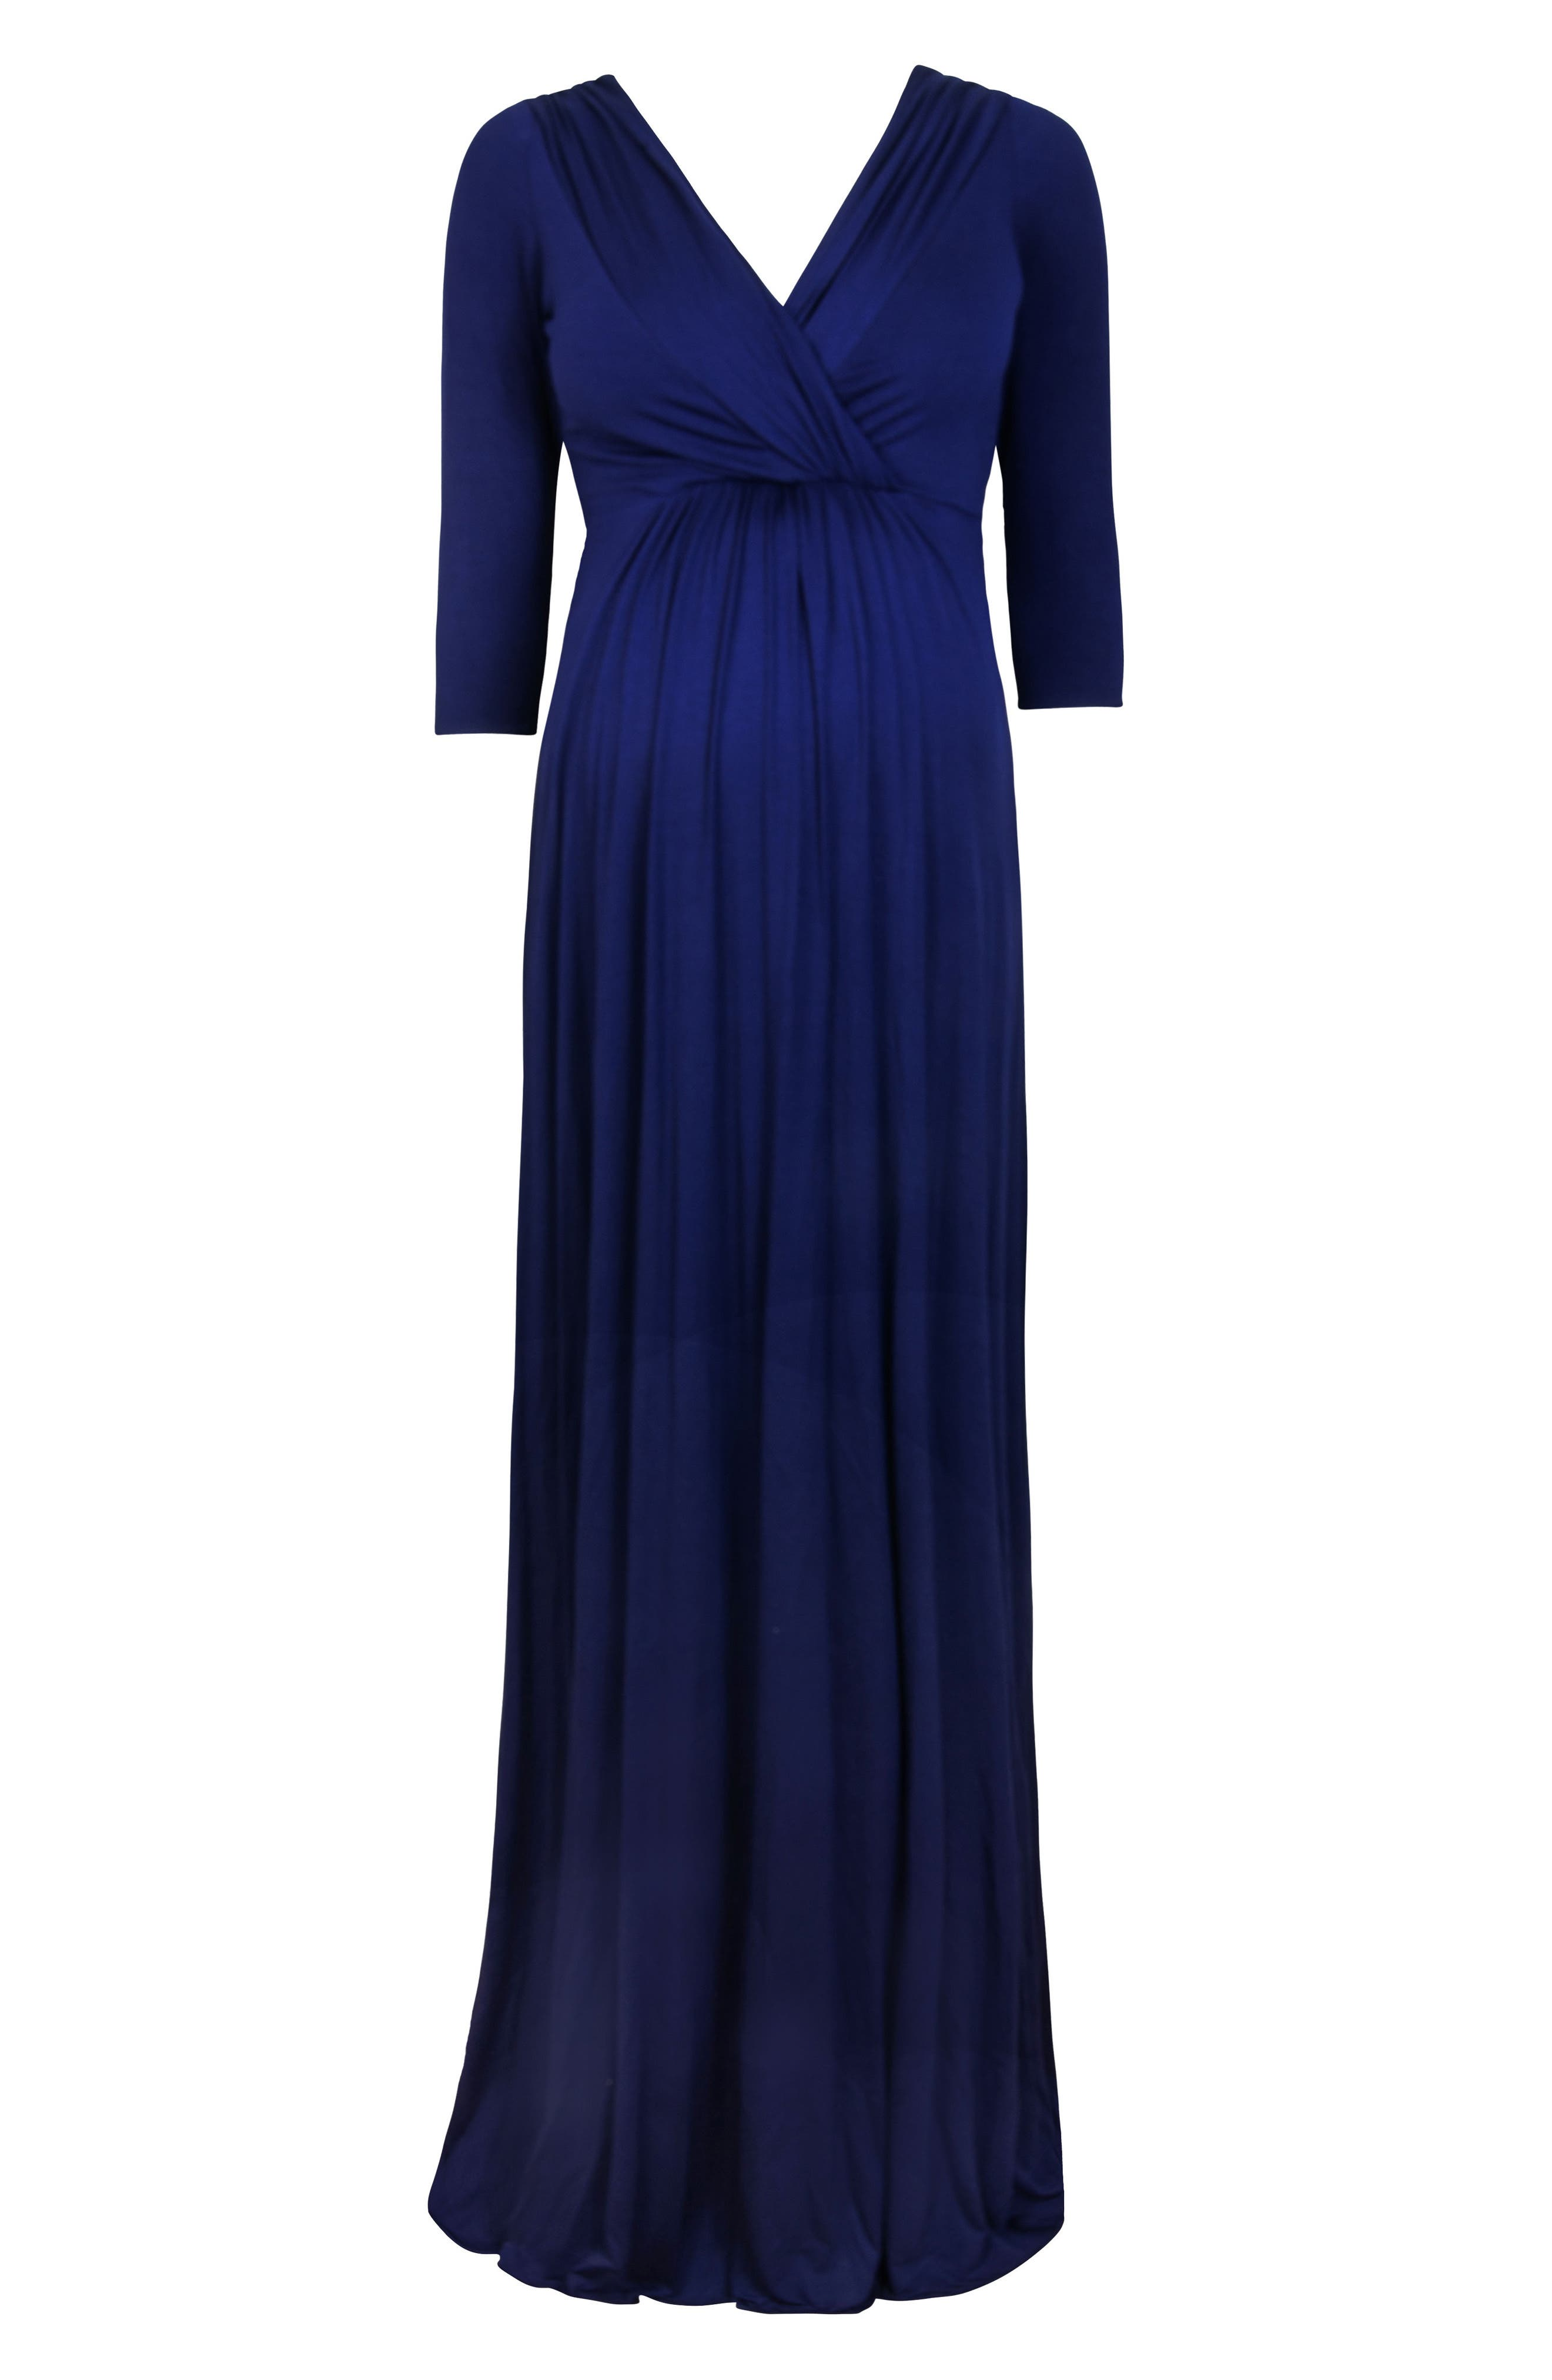 Willow Maternity Gown,                             Alternate thumbnail 3, color,                             Eclipse Blue